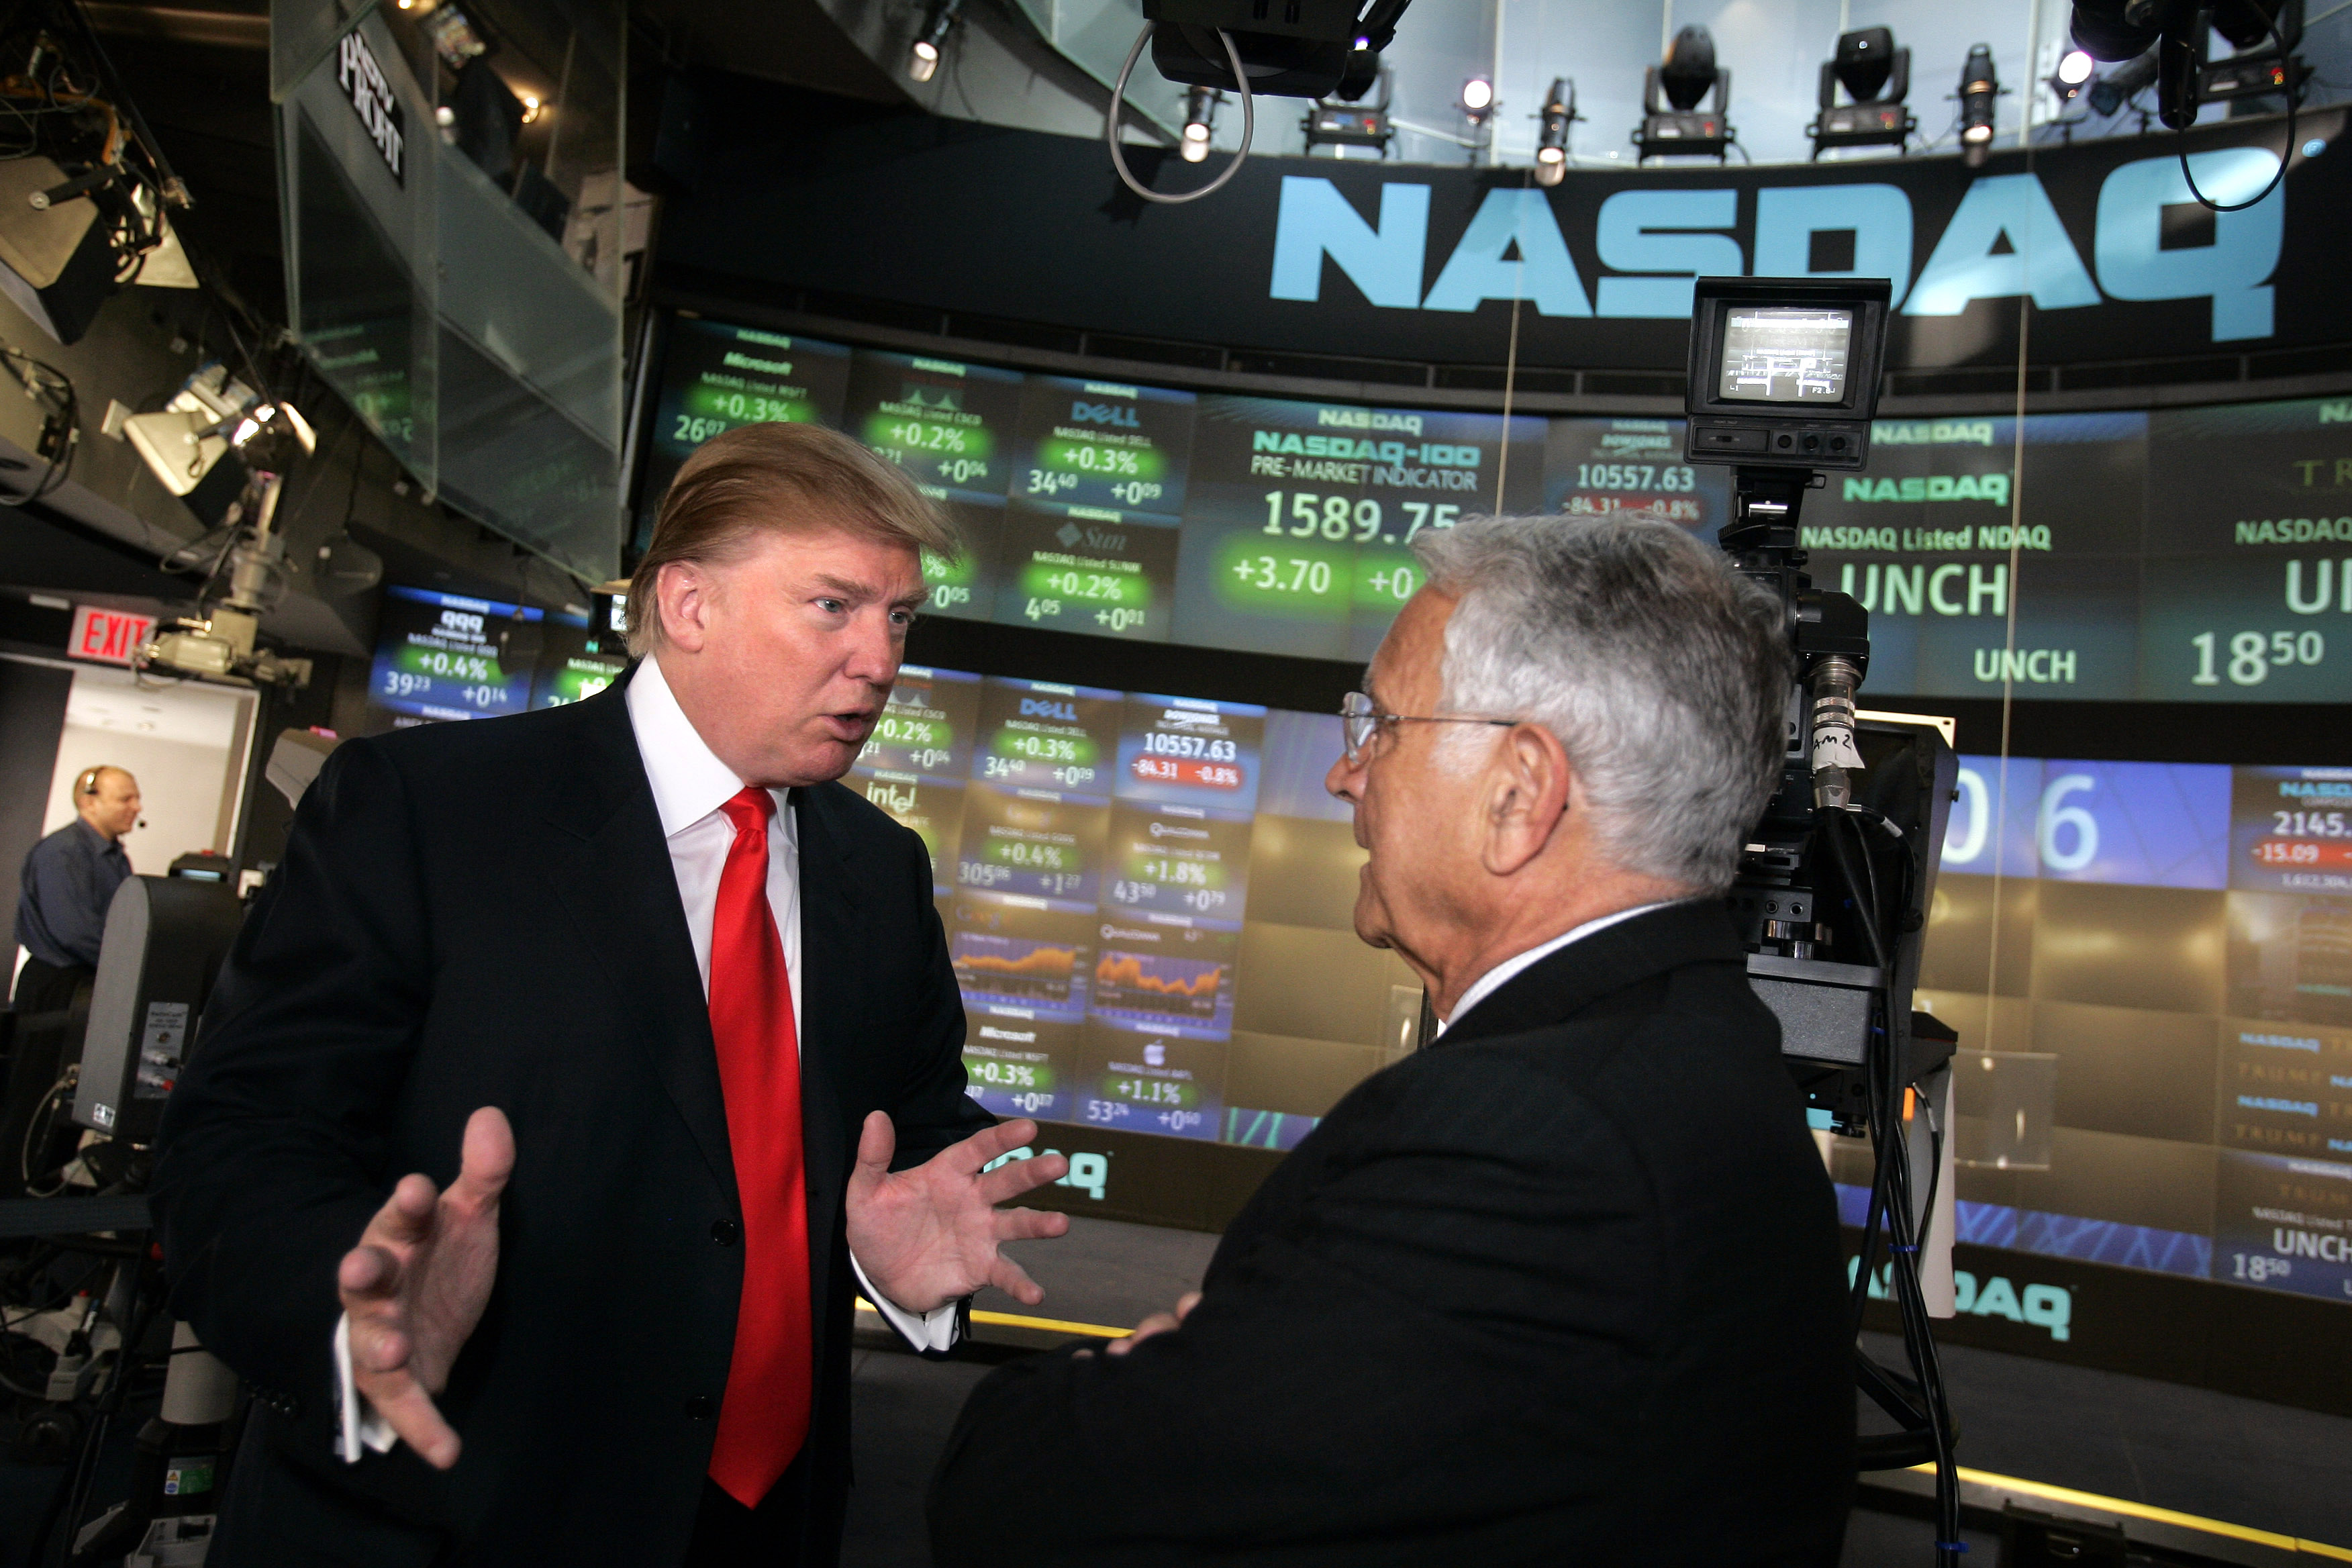 Donald Trump Presides Over NASDAQ Opening